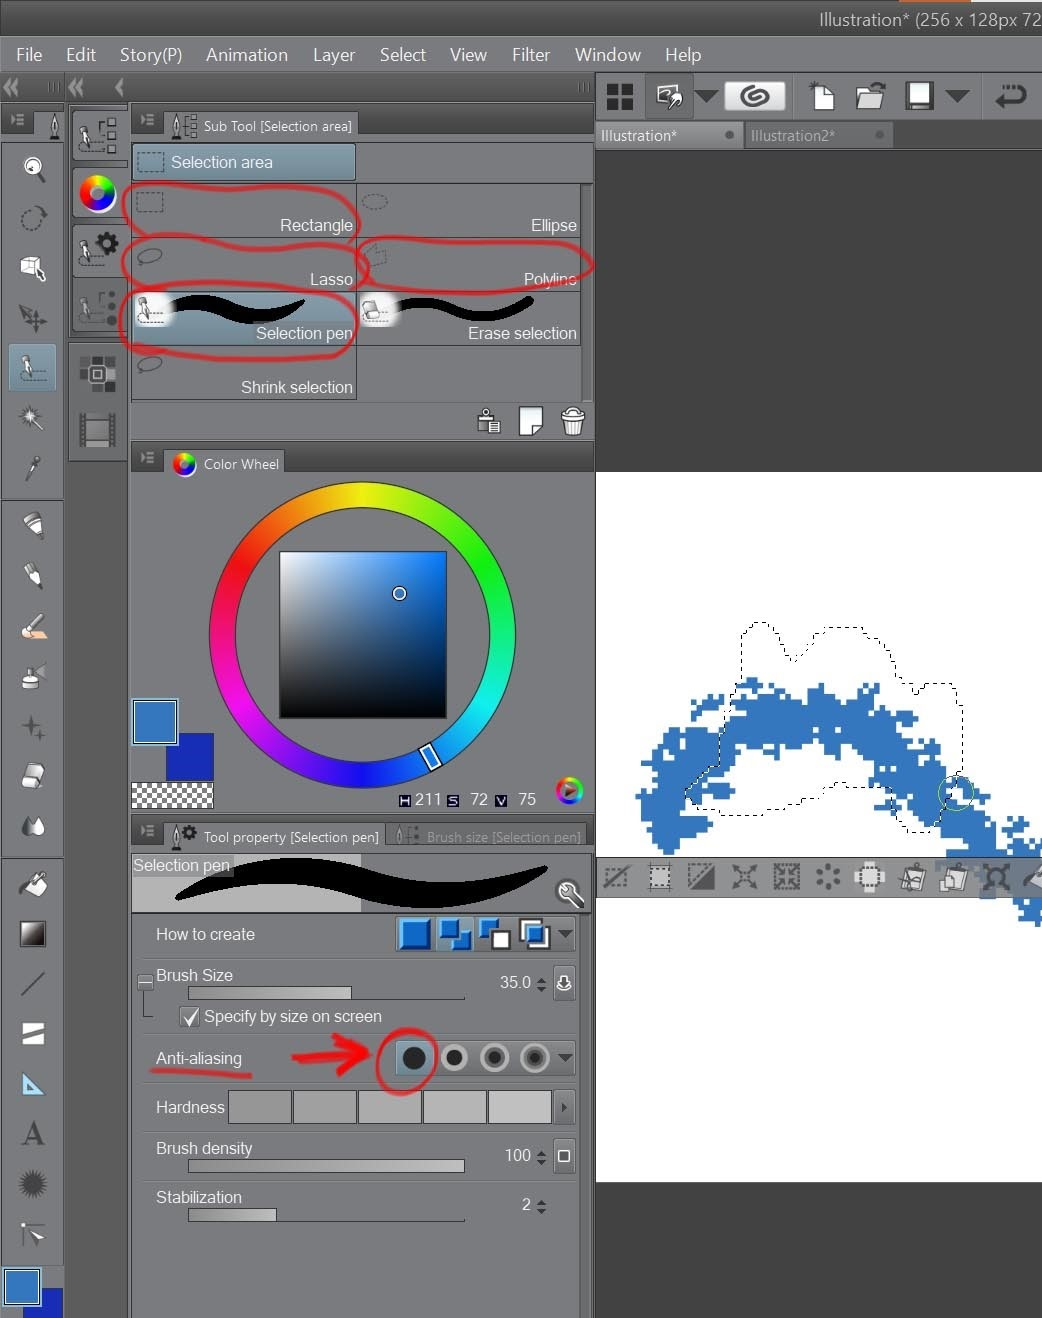 How to create a beautiful Pixel Art environment in Clip Studio Paint: Prepare selection tools